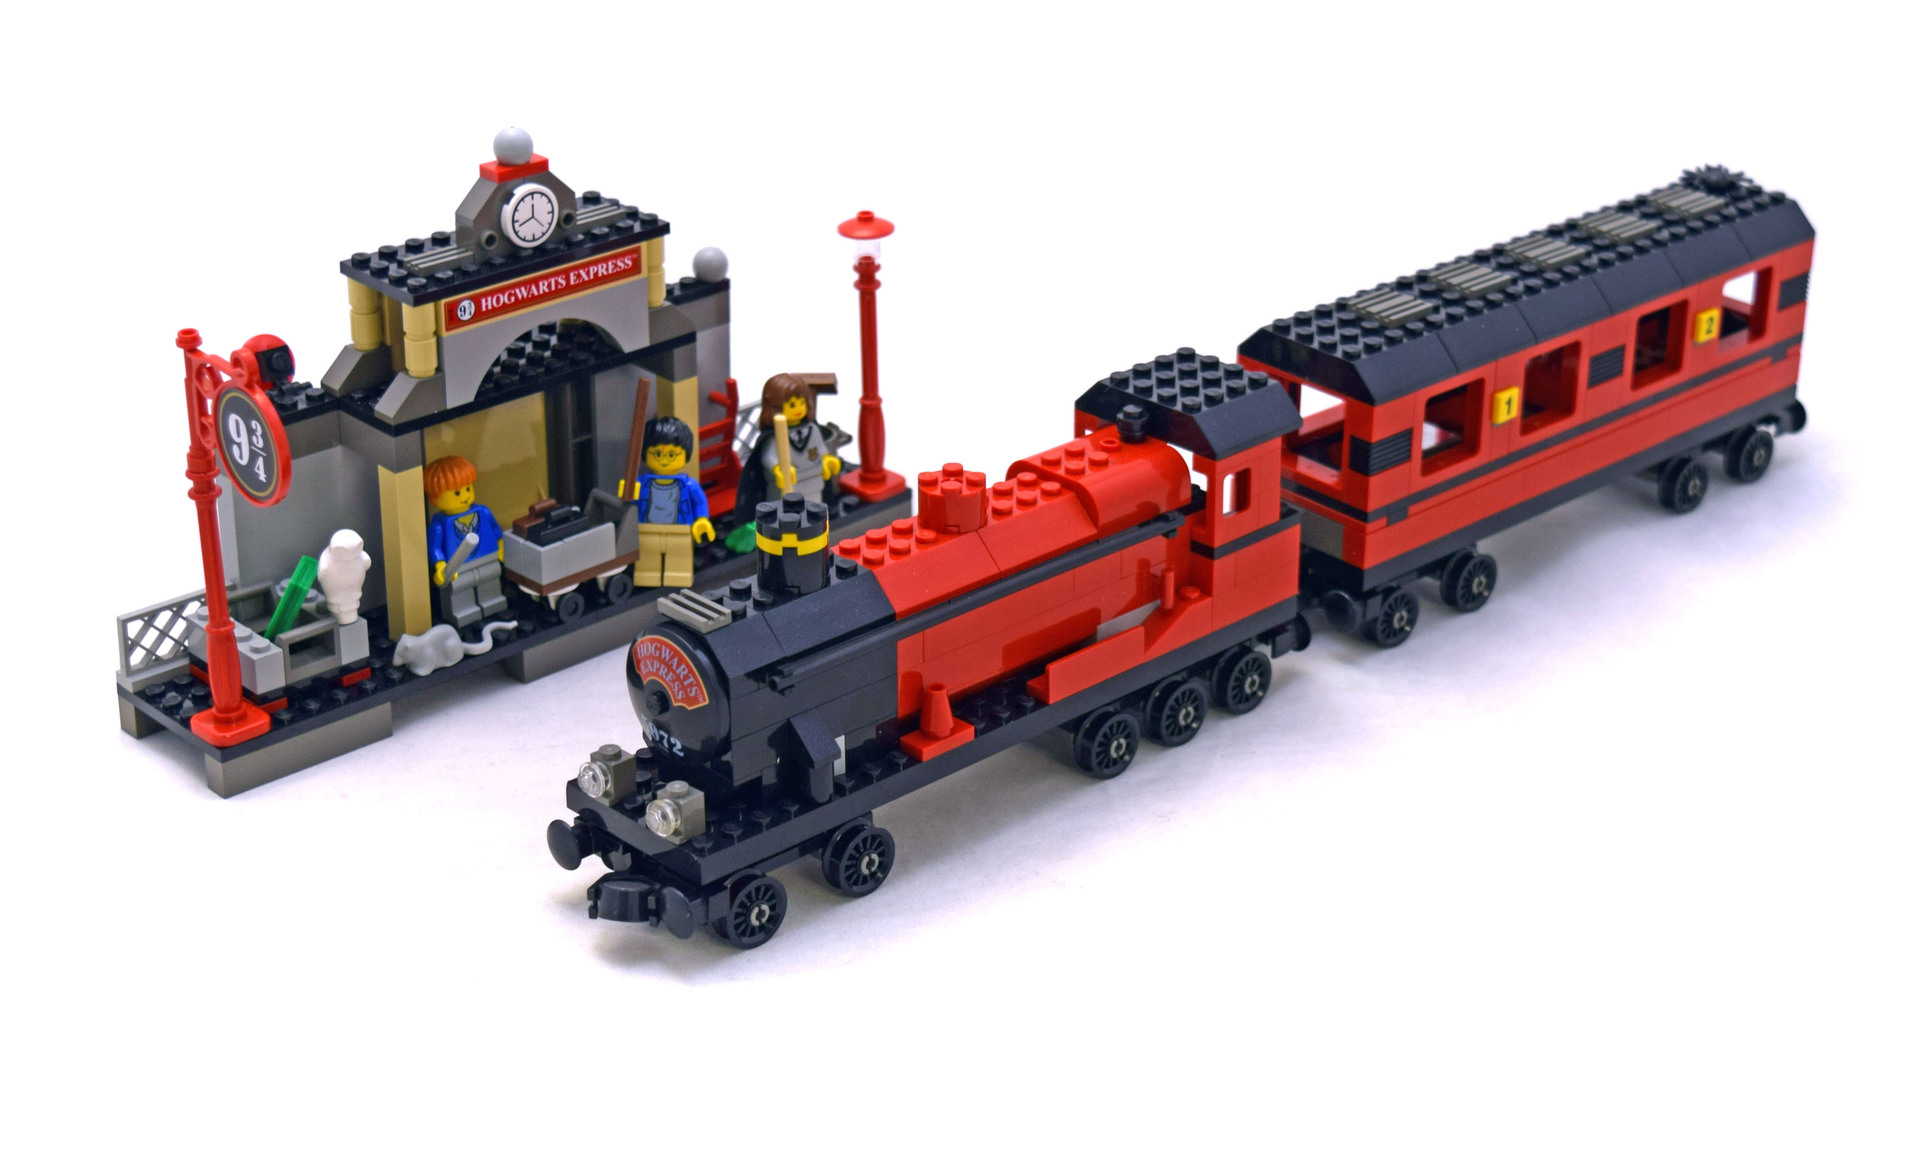 This set is retired and is now a collectors item Indeed even the latest iteration of the Hogwarts Express is out of production 4841 so prices are rising on all